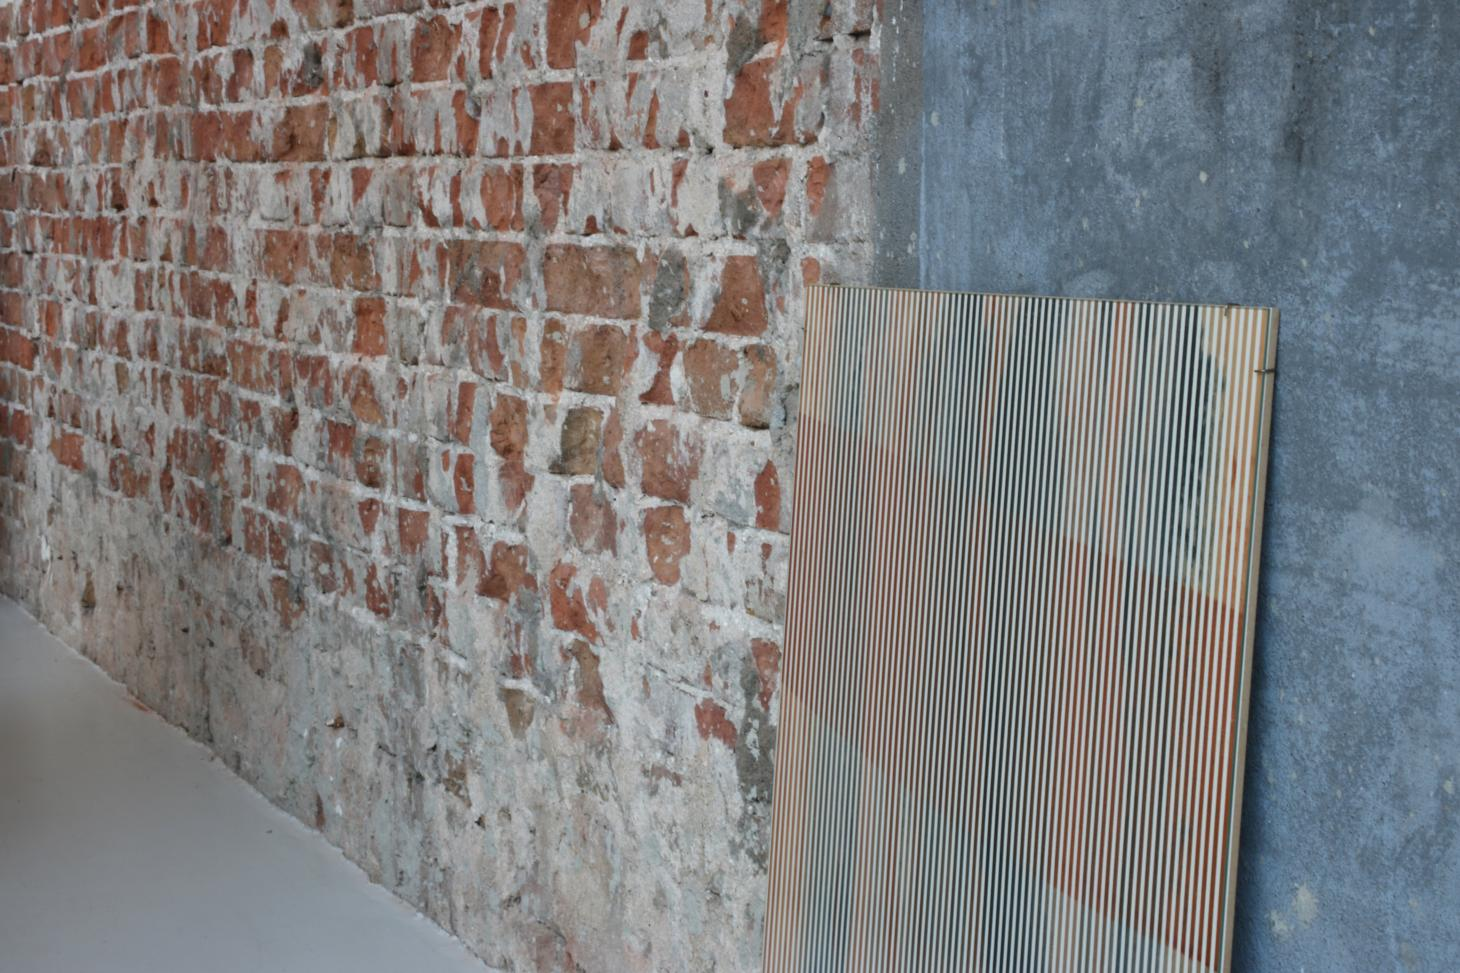 Brick wall with panel displaying striped wallpaper from the living colour project by Buro Belen